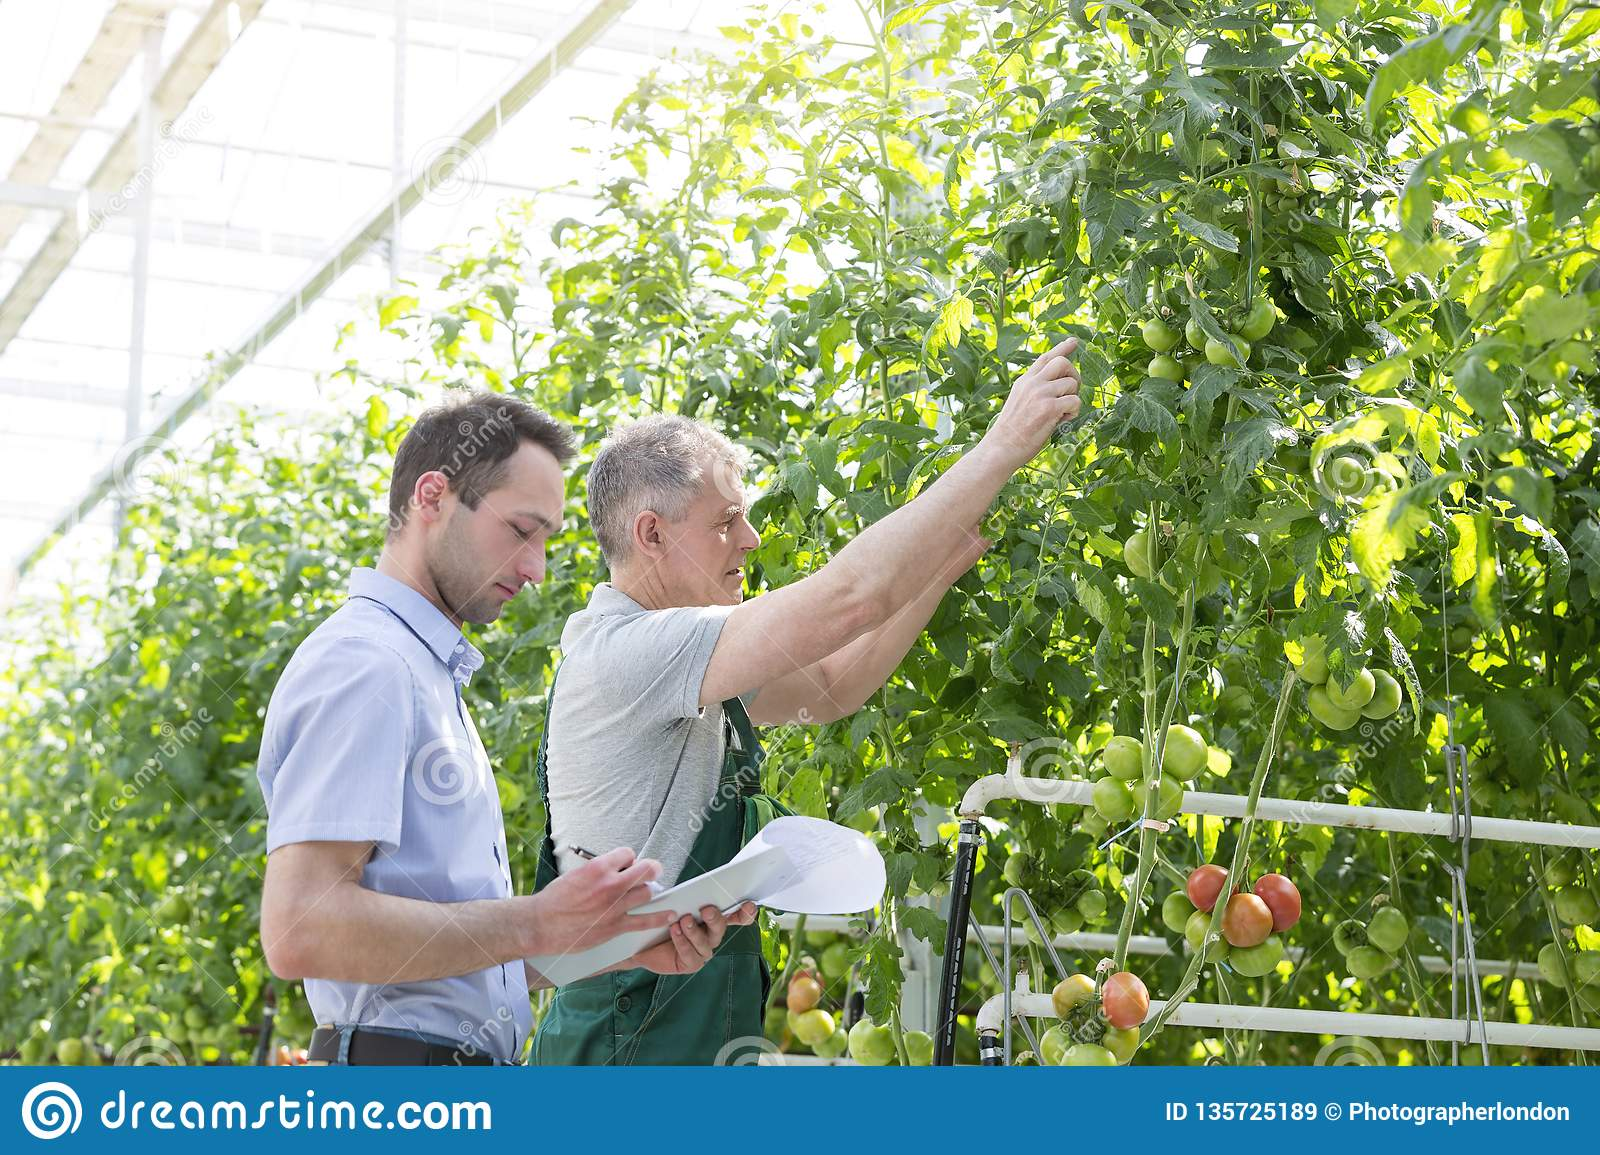 Supervisor making report while farmer showing tomatoes in greenhouse